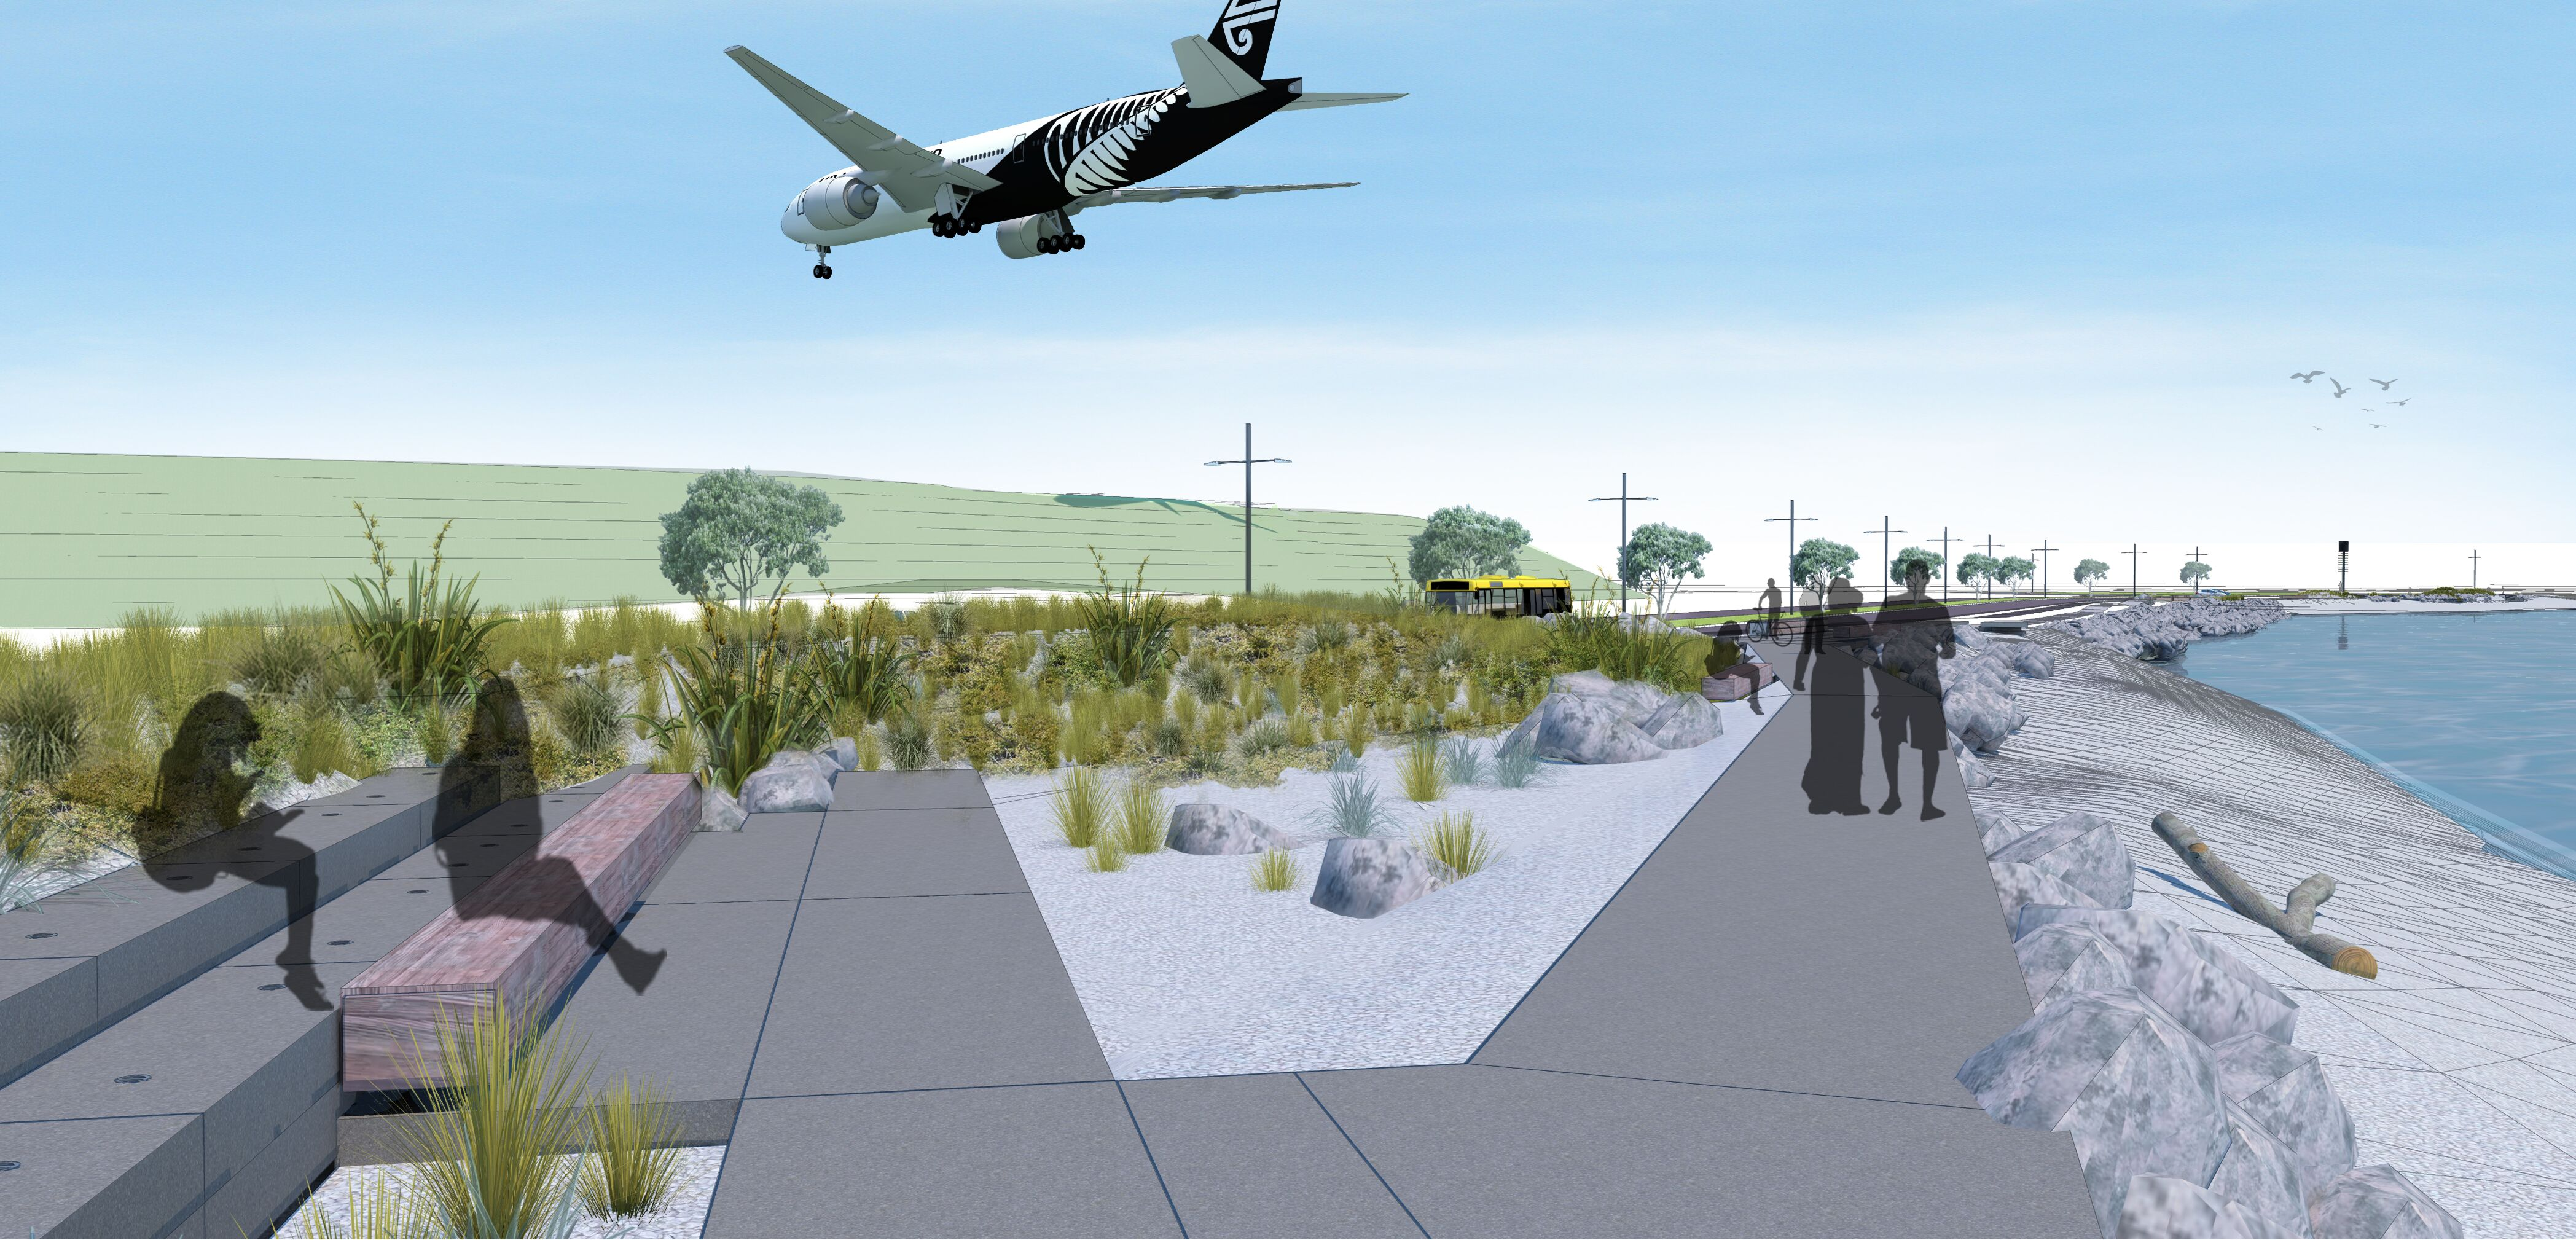 Cobham Drive under plane artists impression Aug 2019